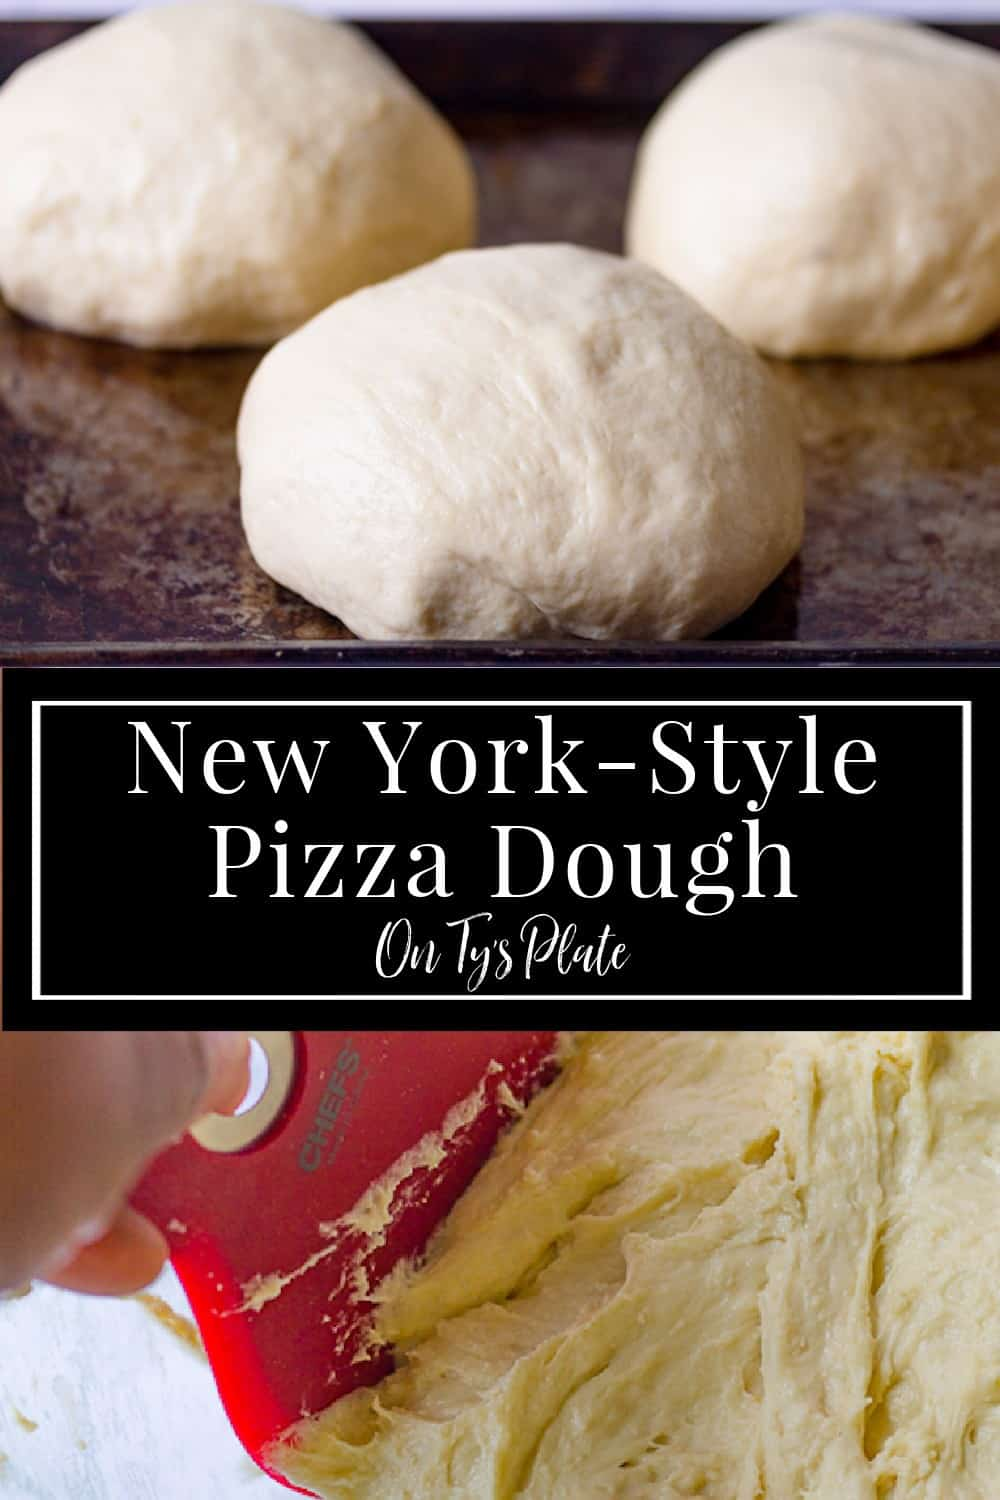 New York-Style Pizza Dough